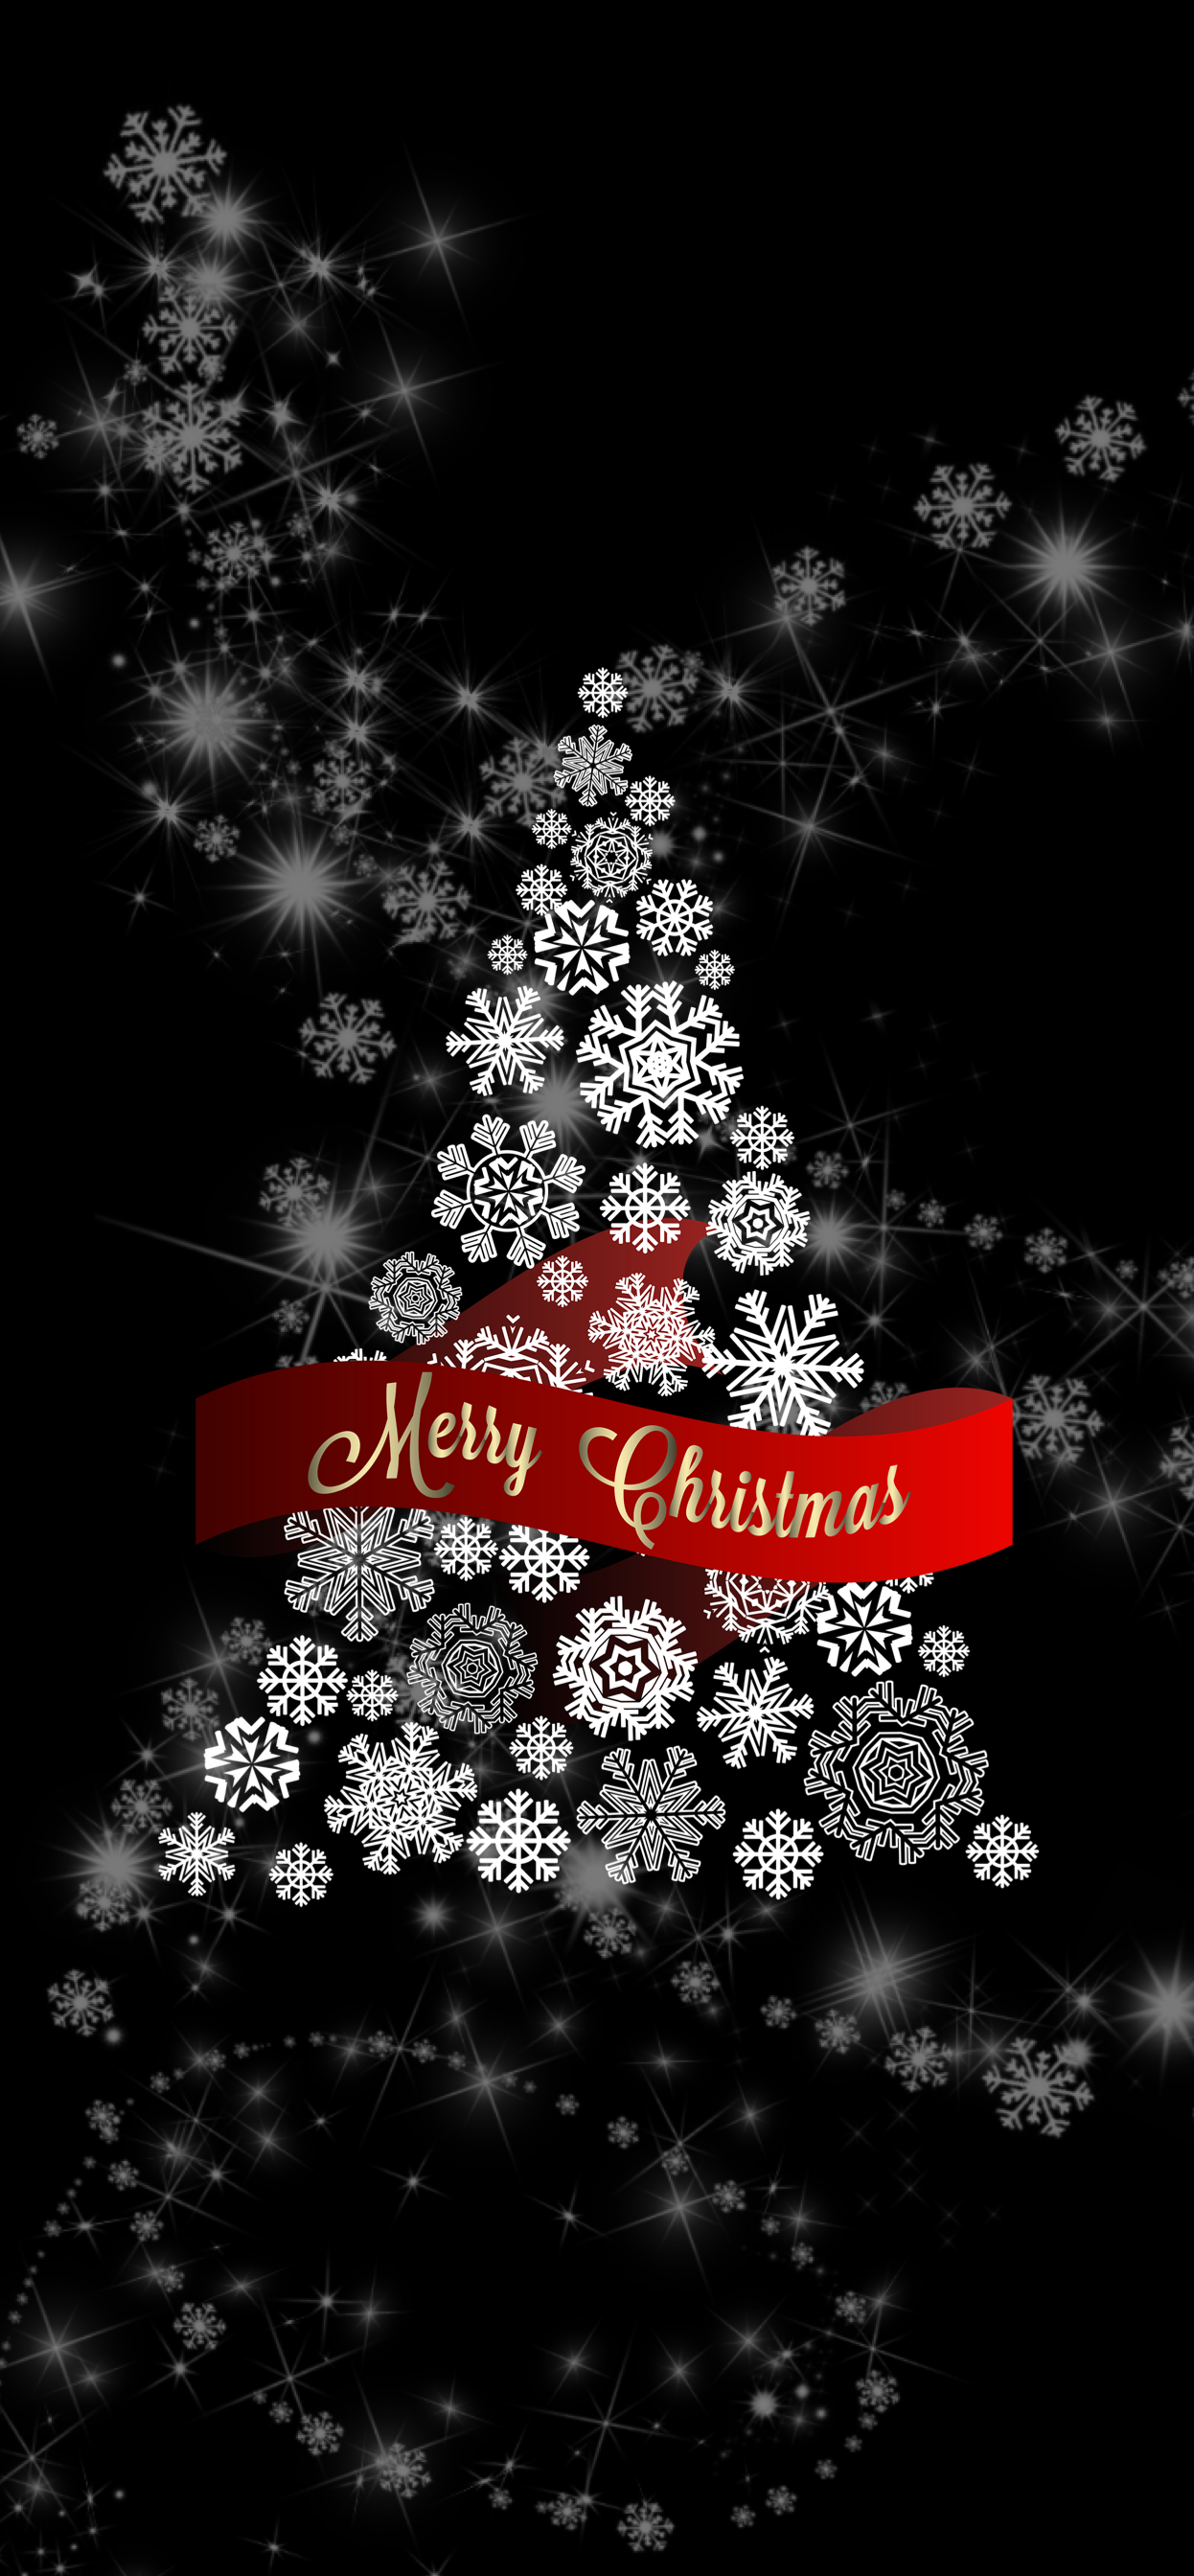 Iphone Xs Max Christmas Tree Iphone Wallpaper Xmas Iphone Wallpaper Winter Wallpaper